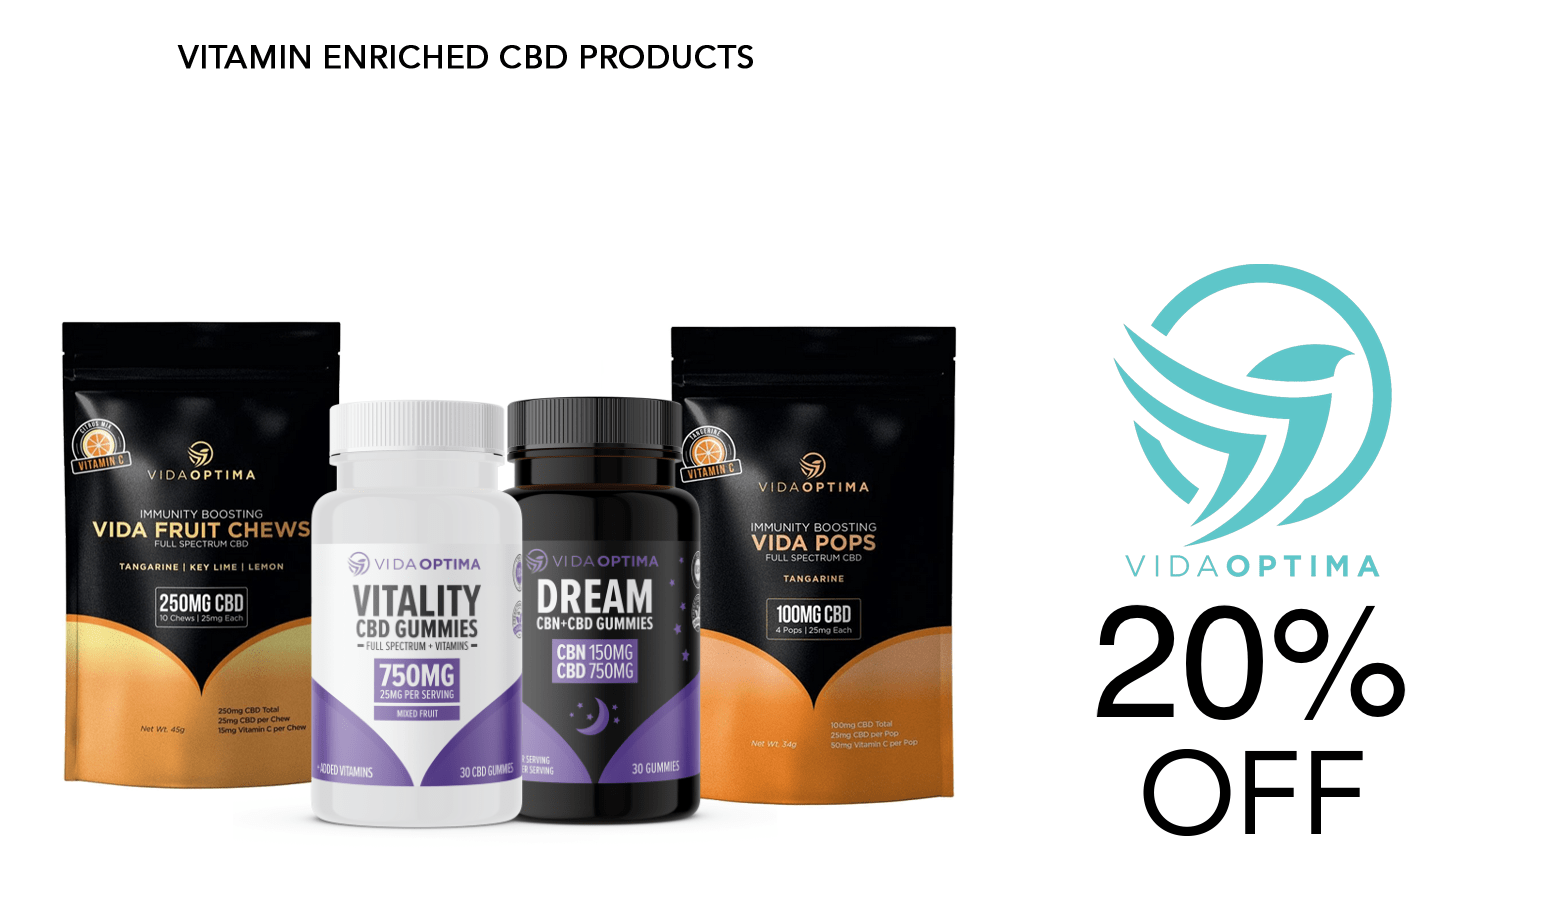 Vida Optima CBD Coupon Code Offer Website